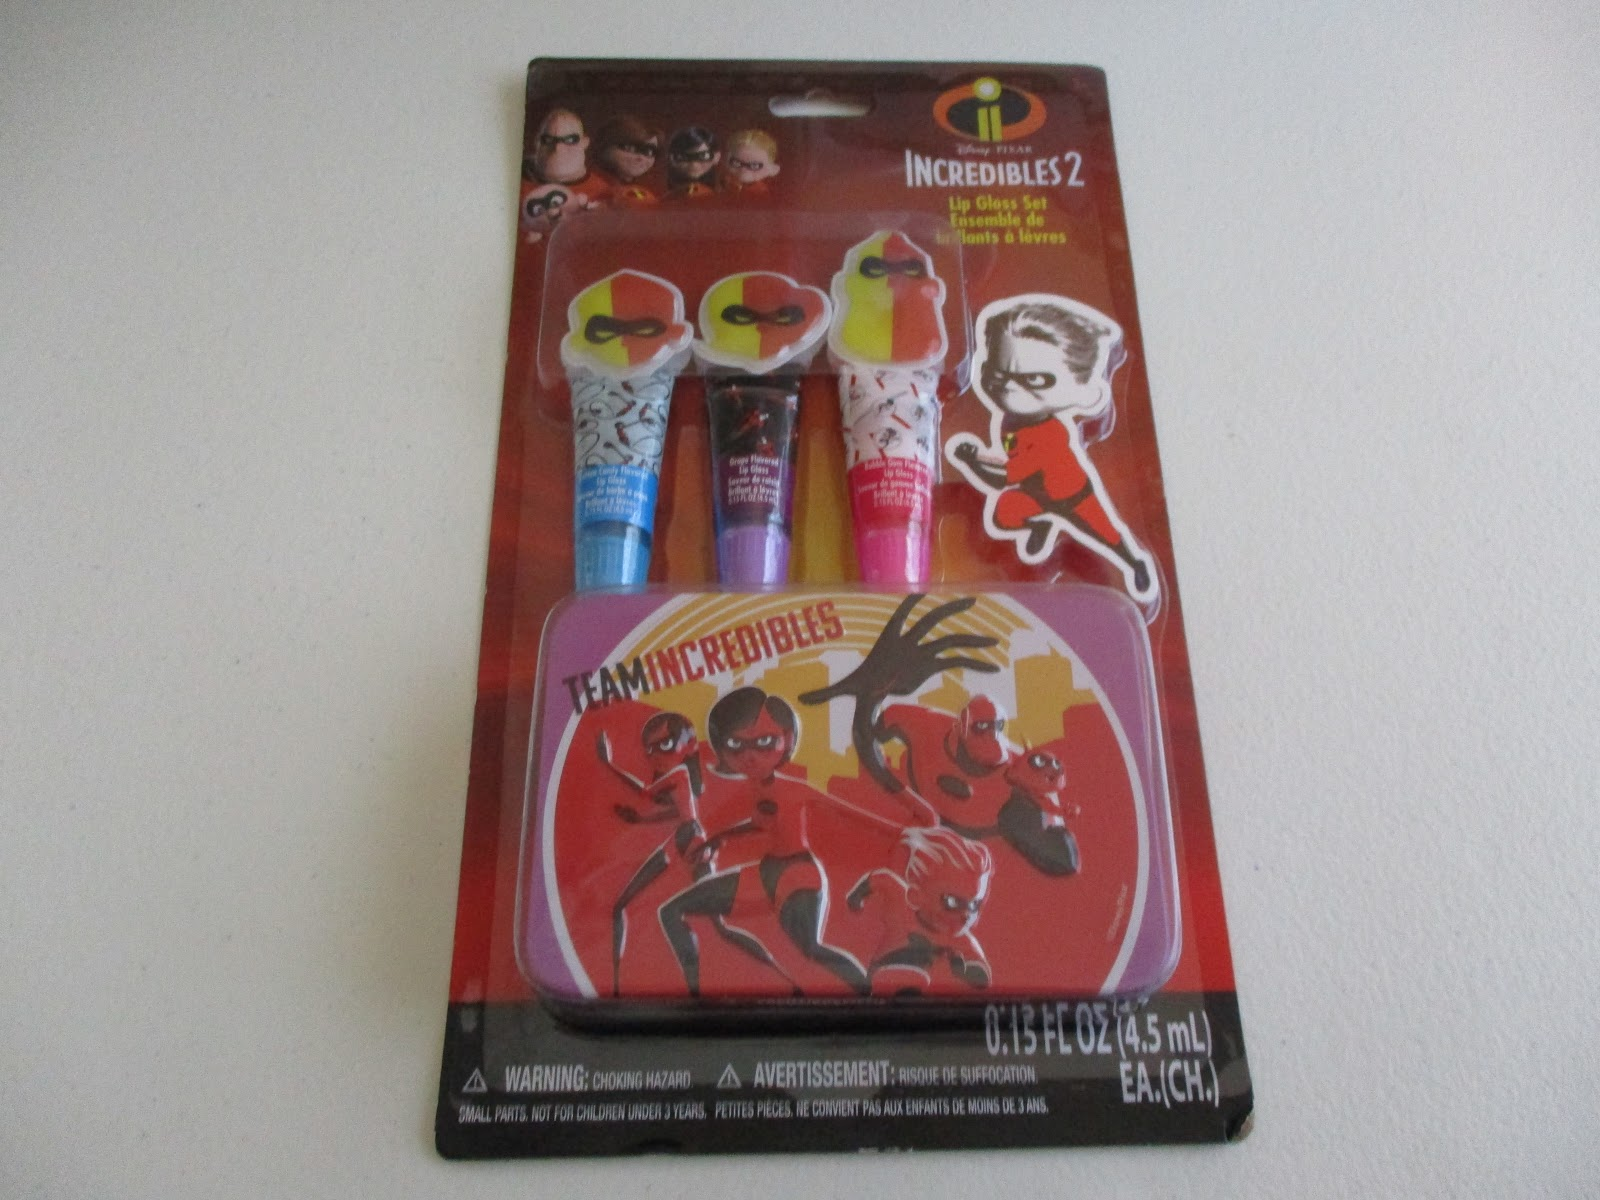 Missys Product Reviews : Incredibles 2 From Townley Girl